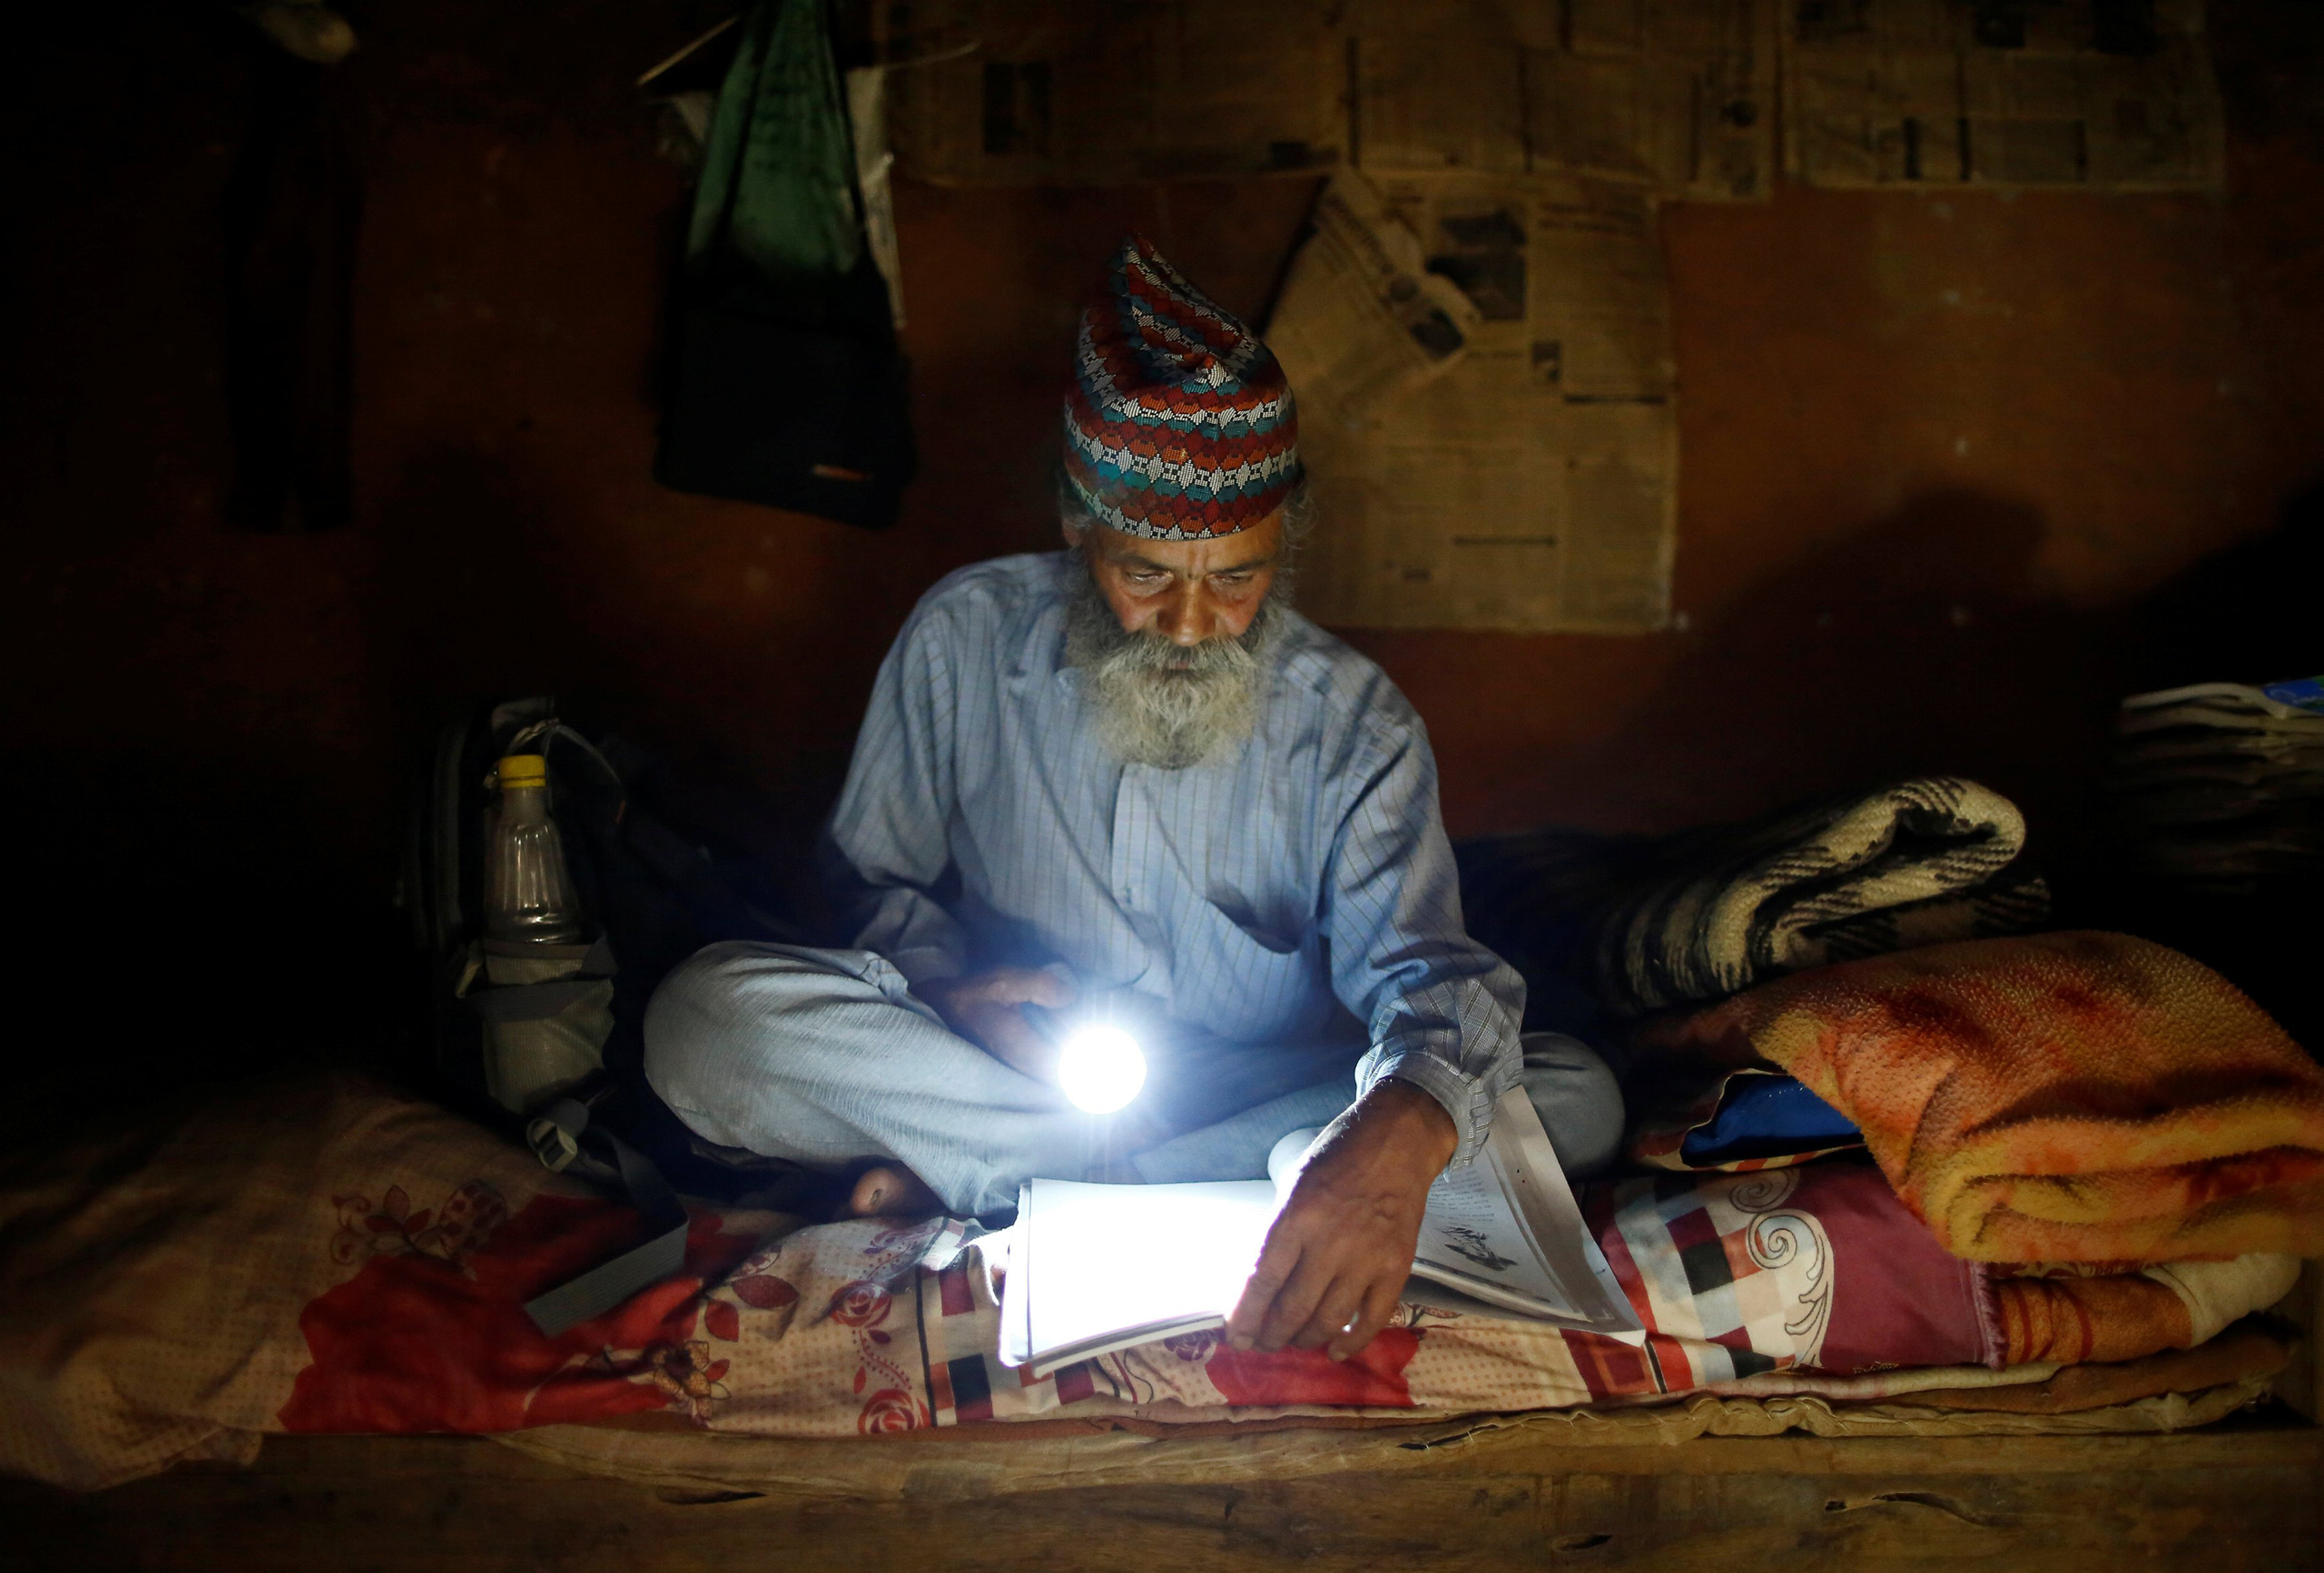 Durga Kami uses a torch to read a book during a power cut at his one-room house in Syangja, Nepal, on June 4, 2016.